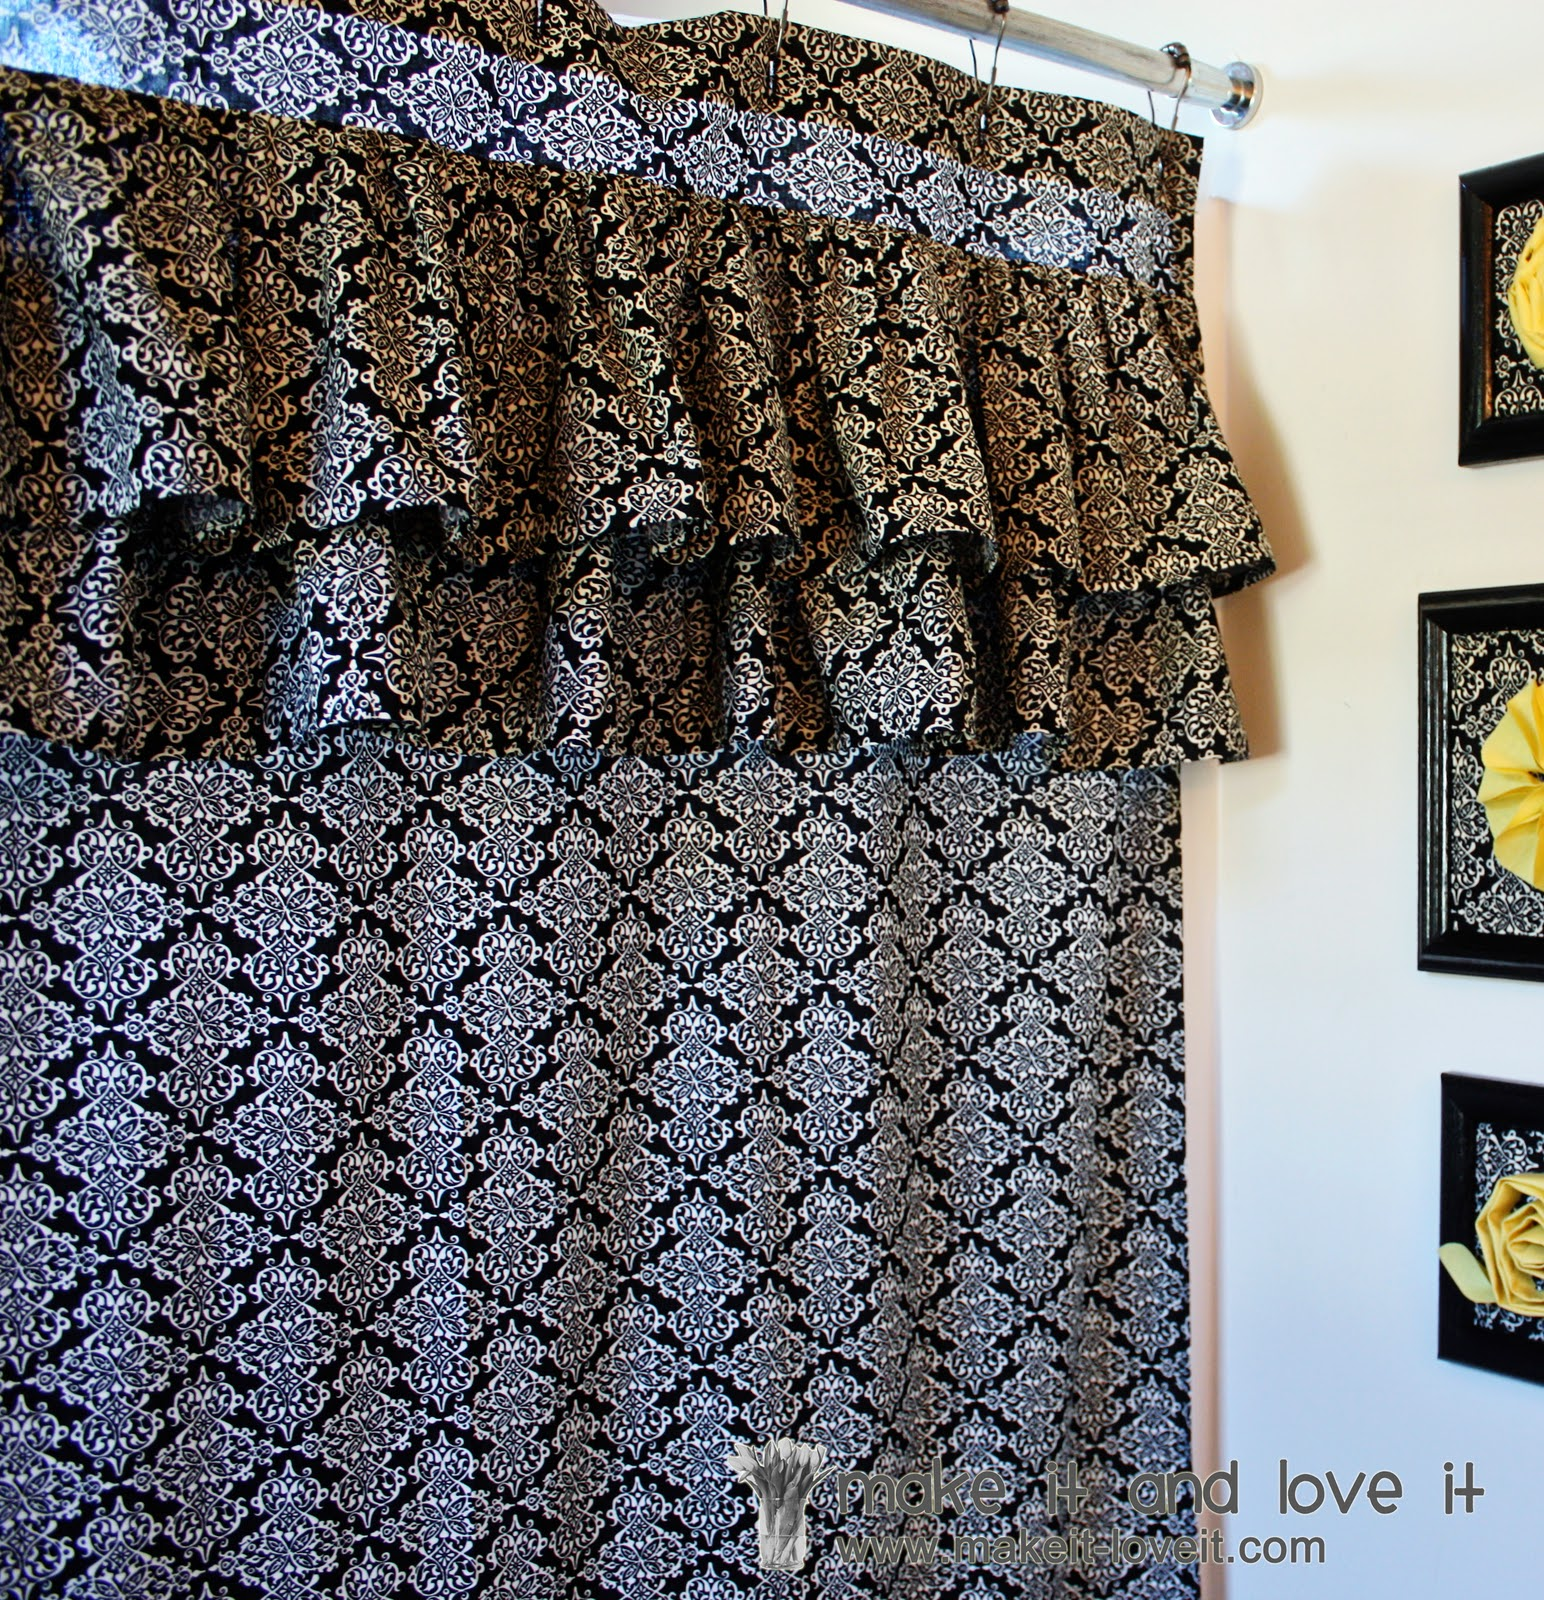 Diy ruffled shower curtain - Decorate My Home Part 17 Ruffled Shower Curtain